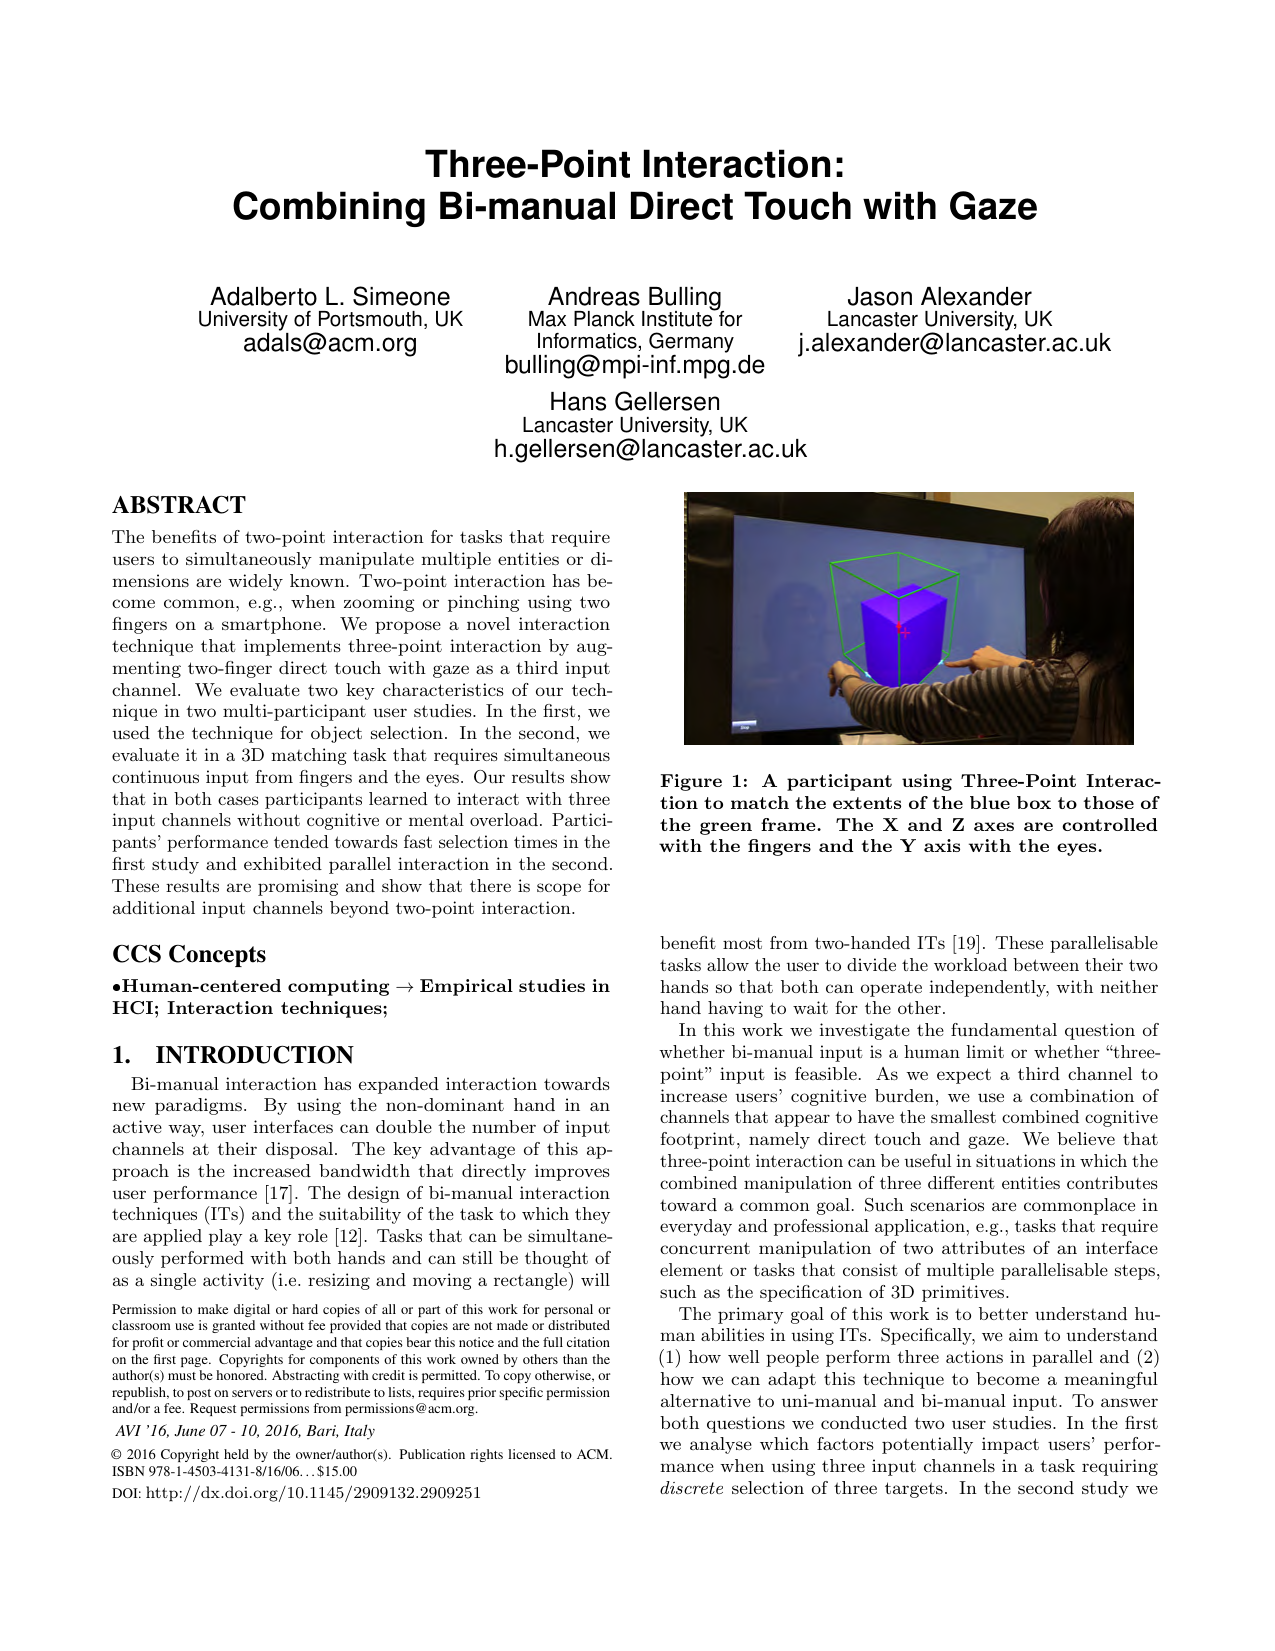 Three-Point Interaction: Combining Bi-manual Direct Touch with Gaze